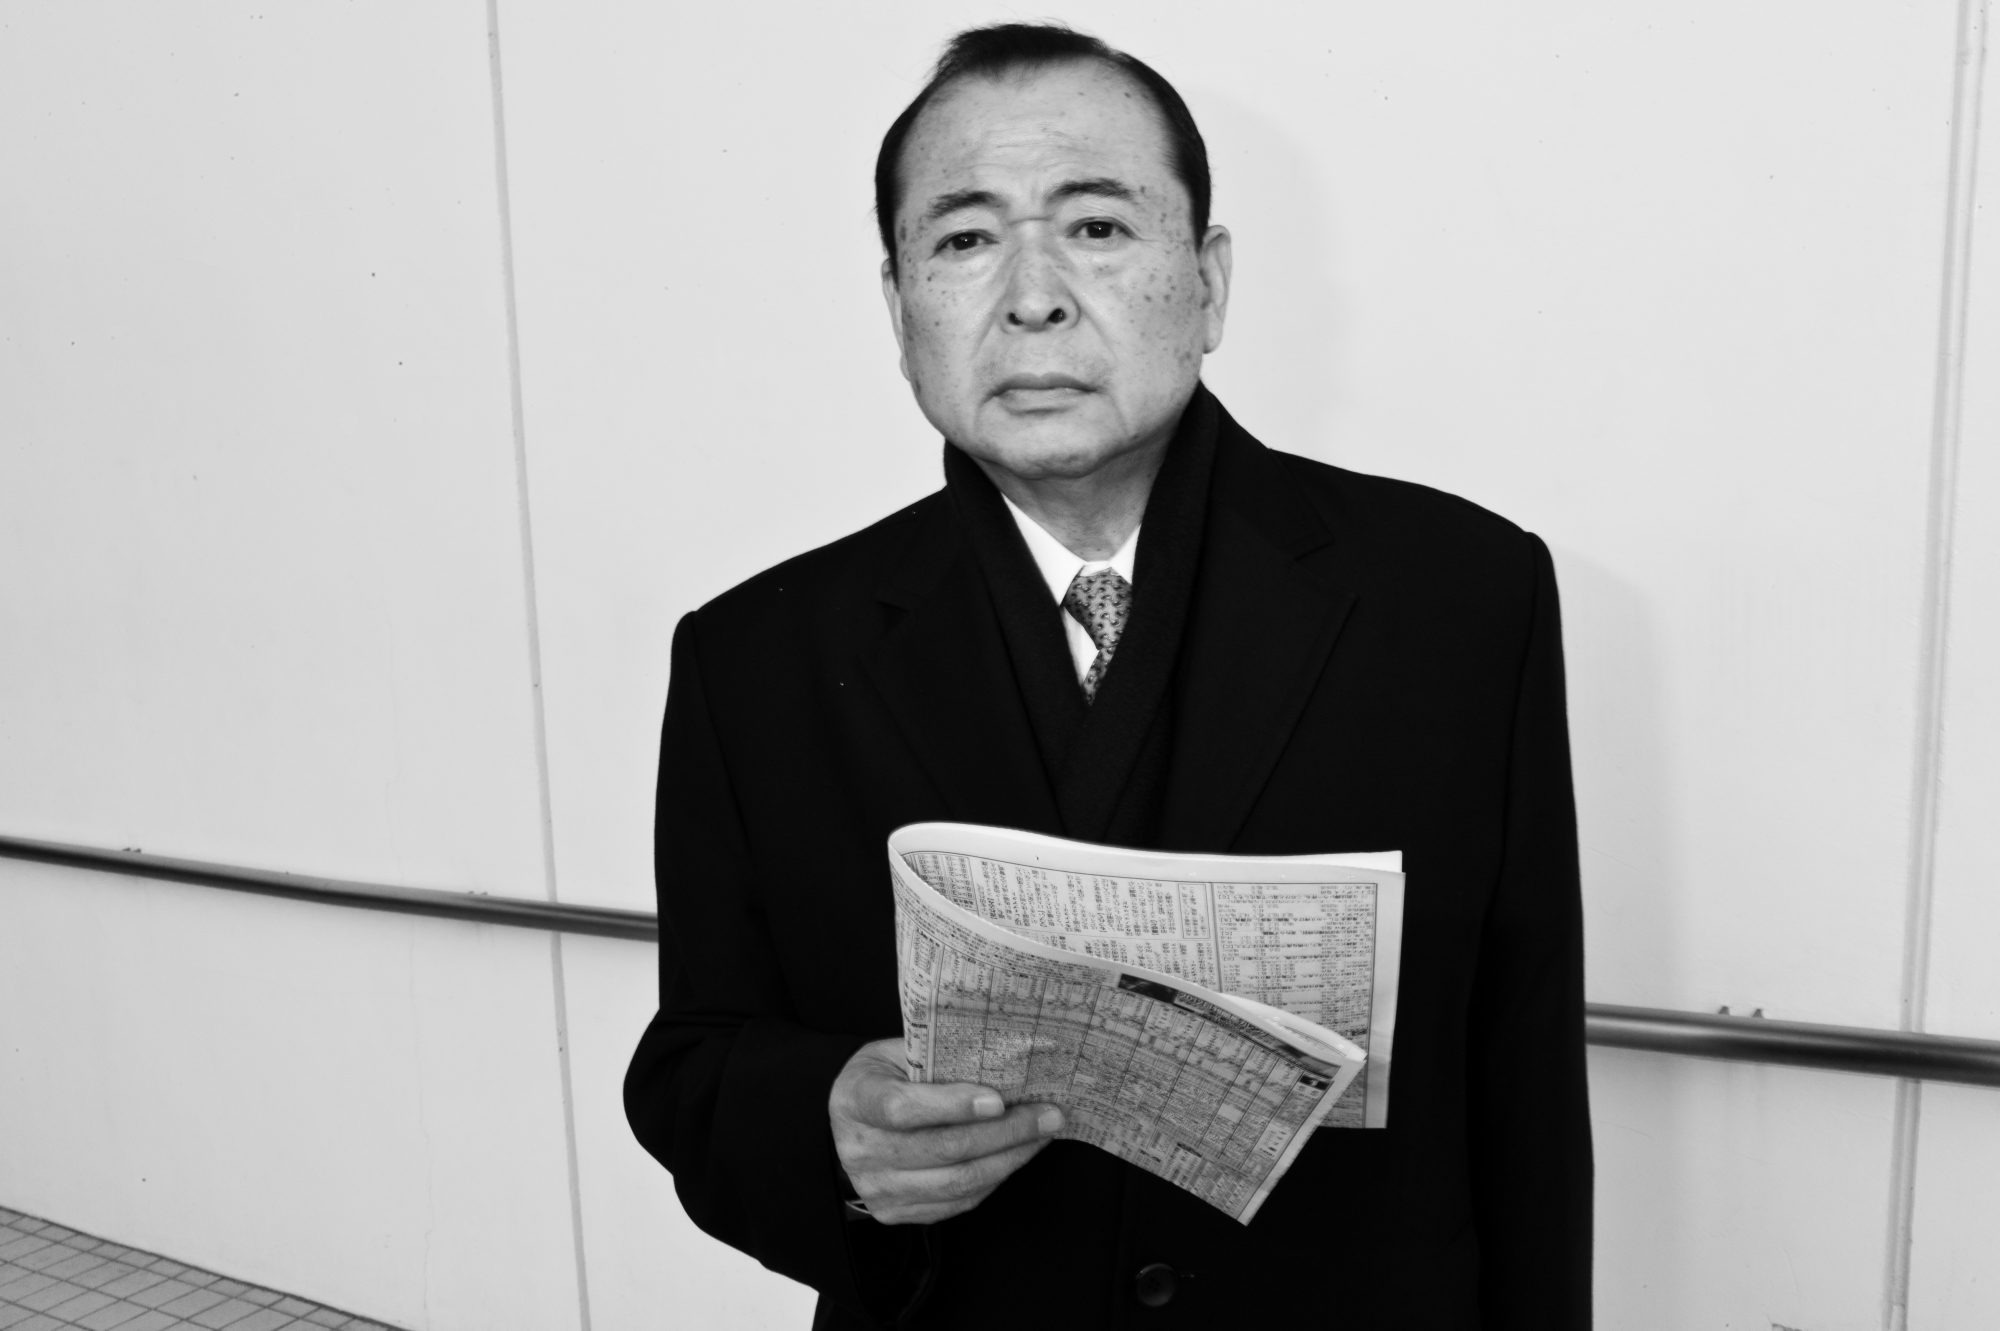 Tokyo race track suit, black and white, newspaper, candid street photography eric kim, Leica m9